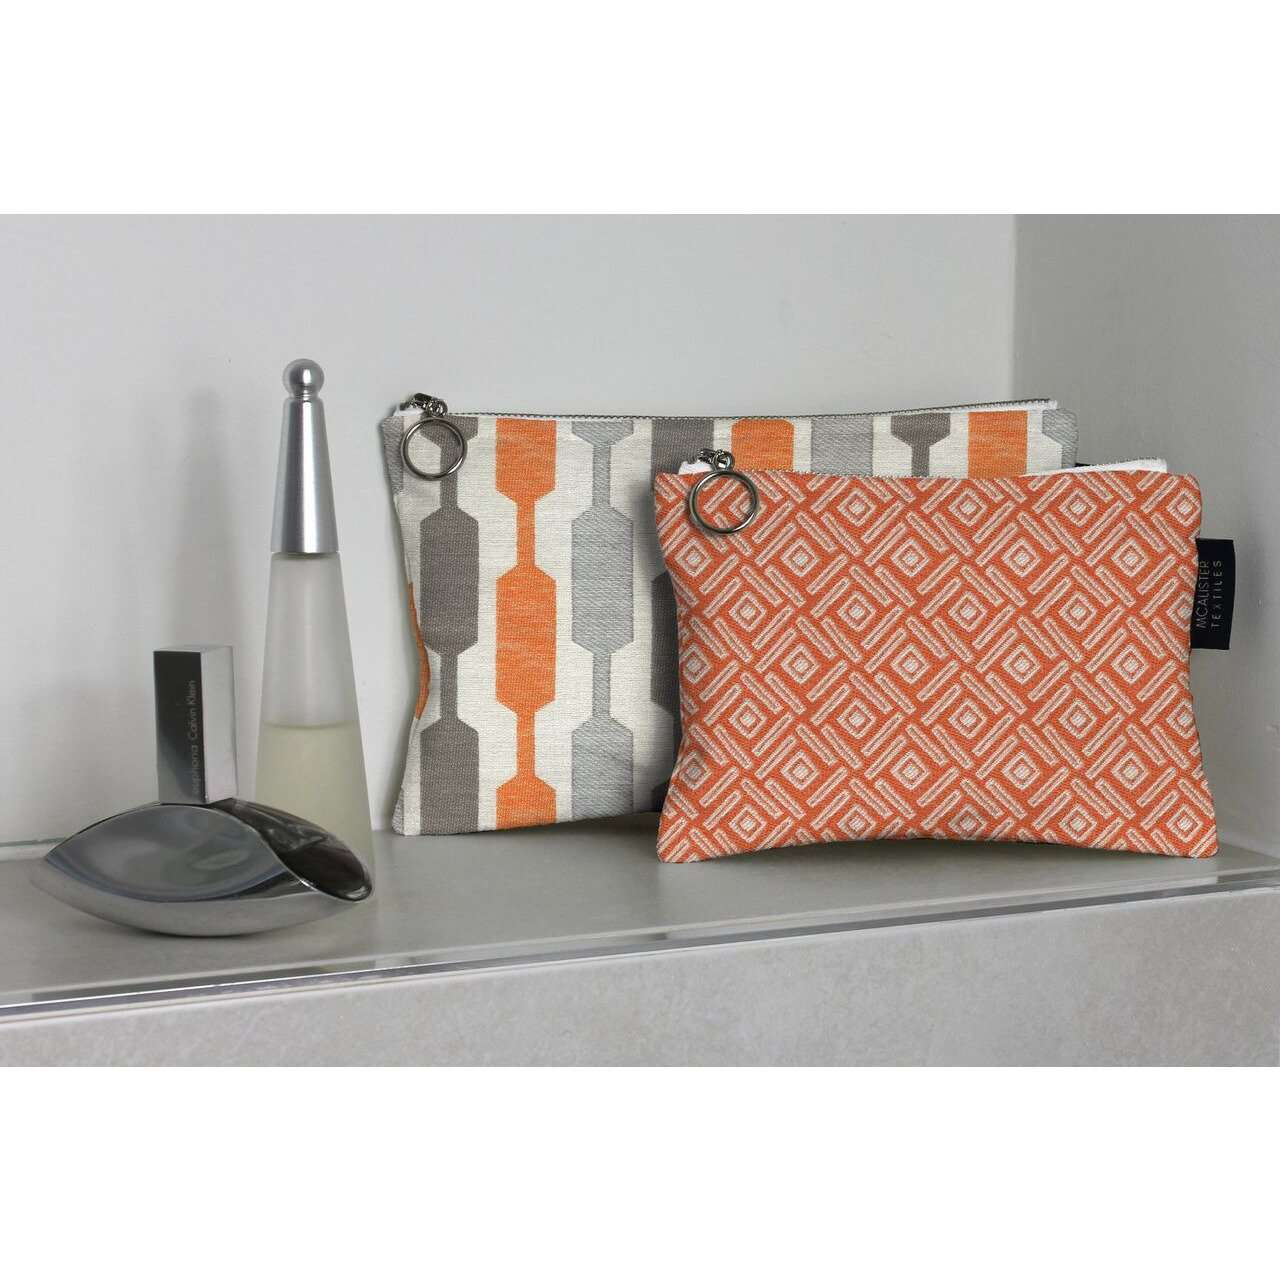 McAlister Textiles Lotta Orange + Teal Makeup Bag - Large Clutch Bag